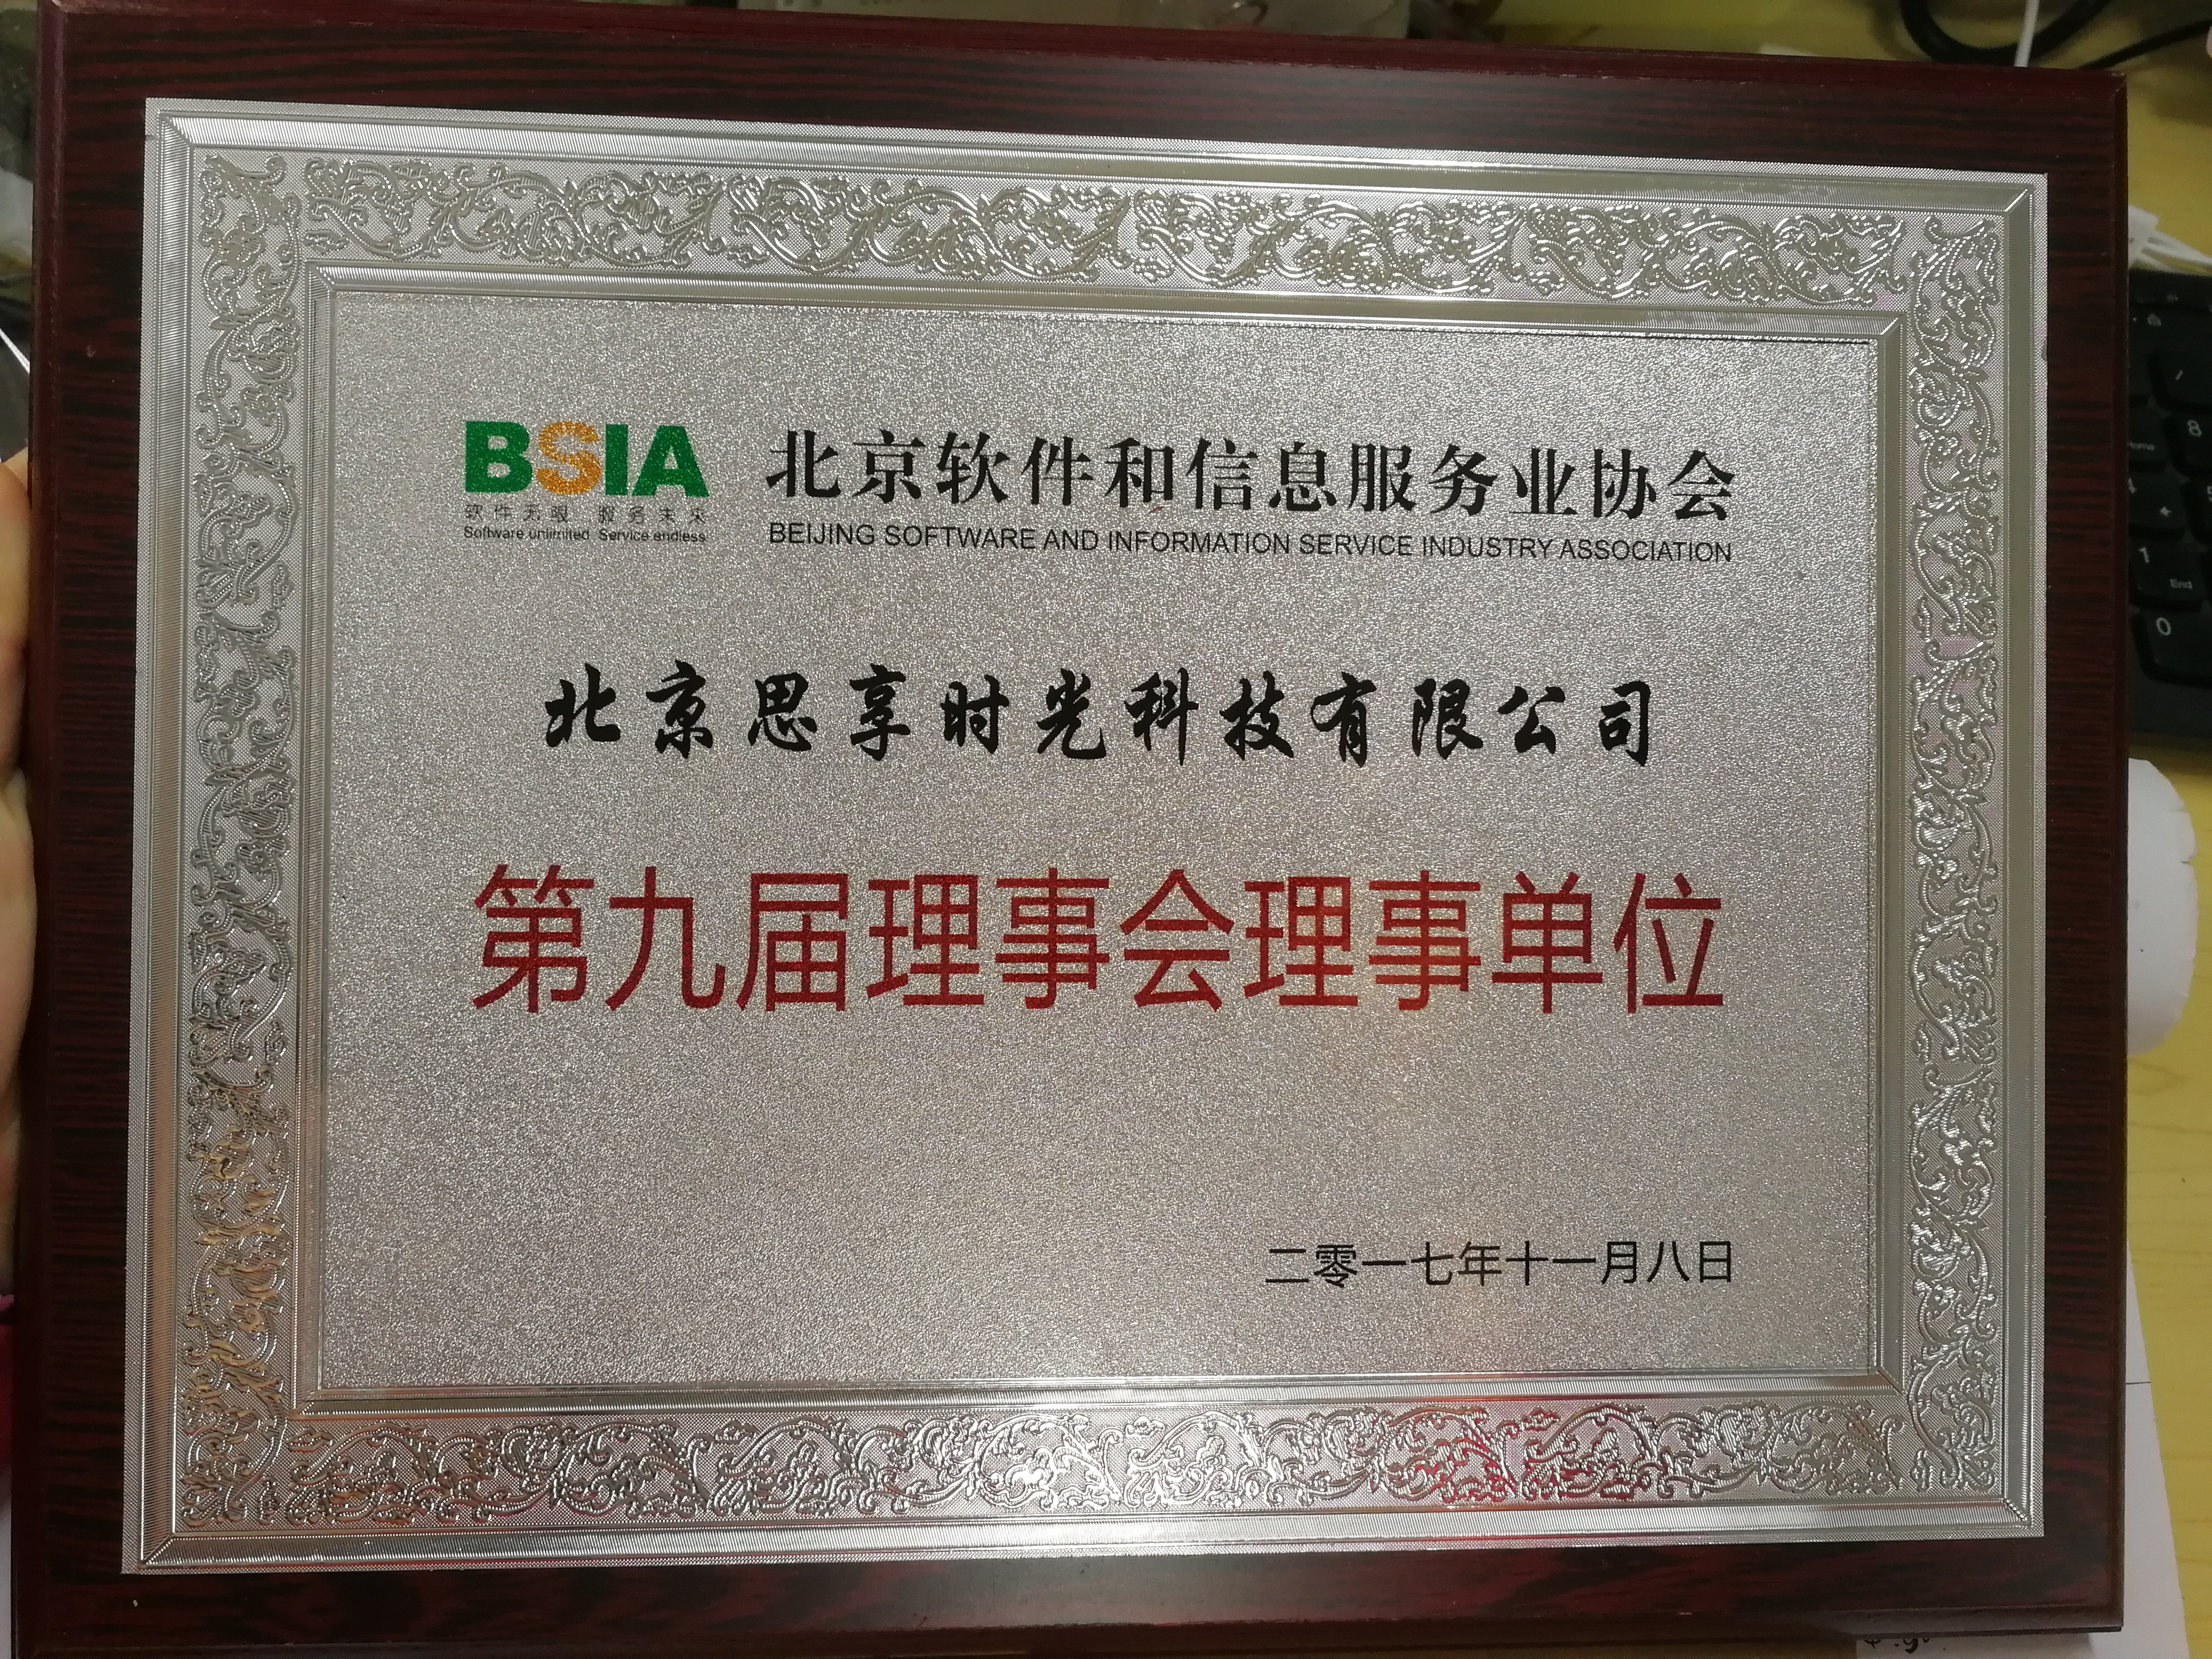 Executive Member of Beijing Software and Information Service Association